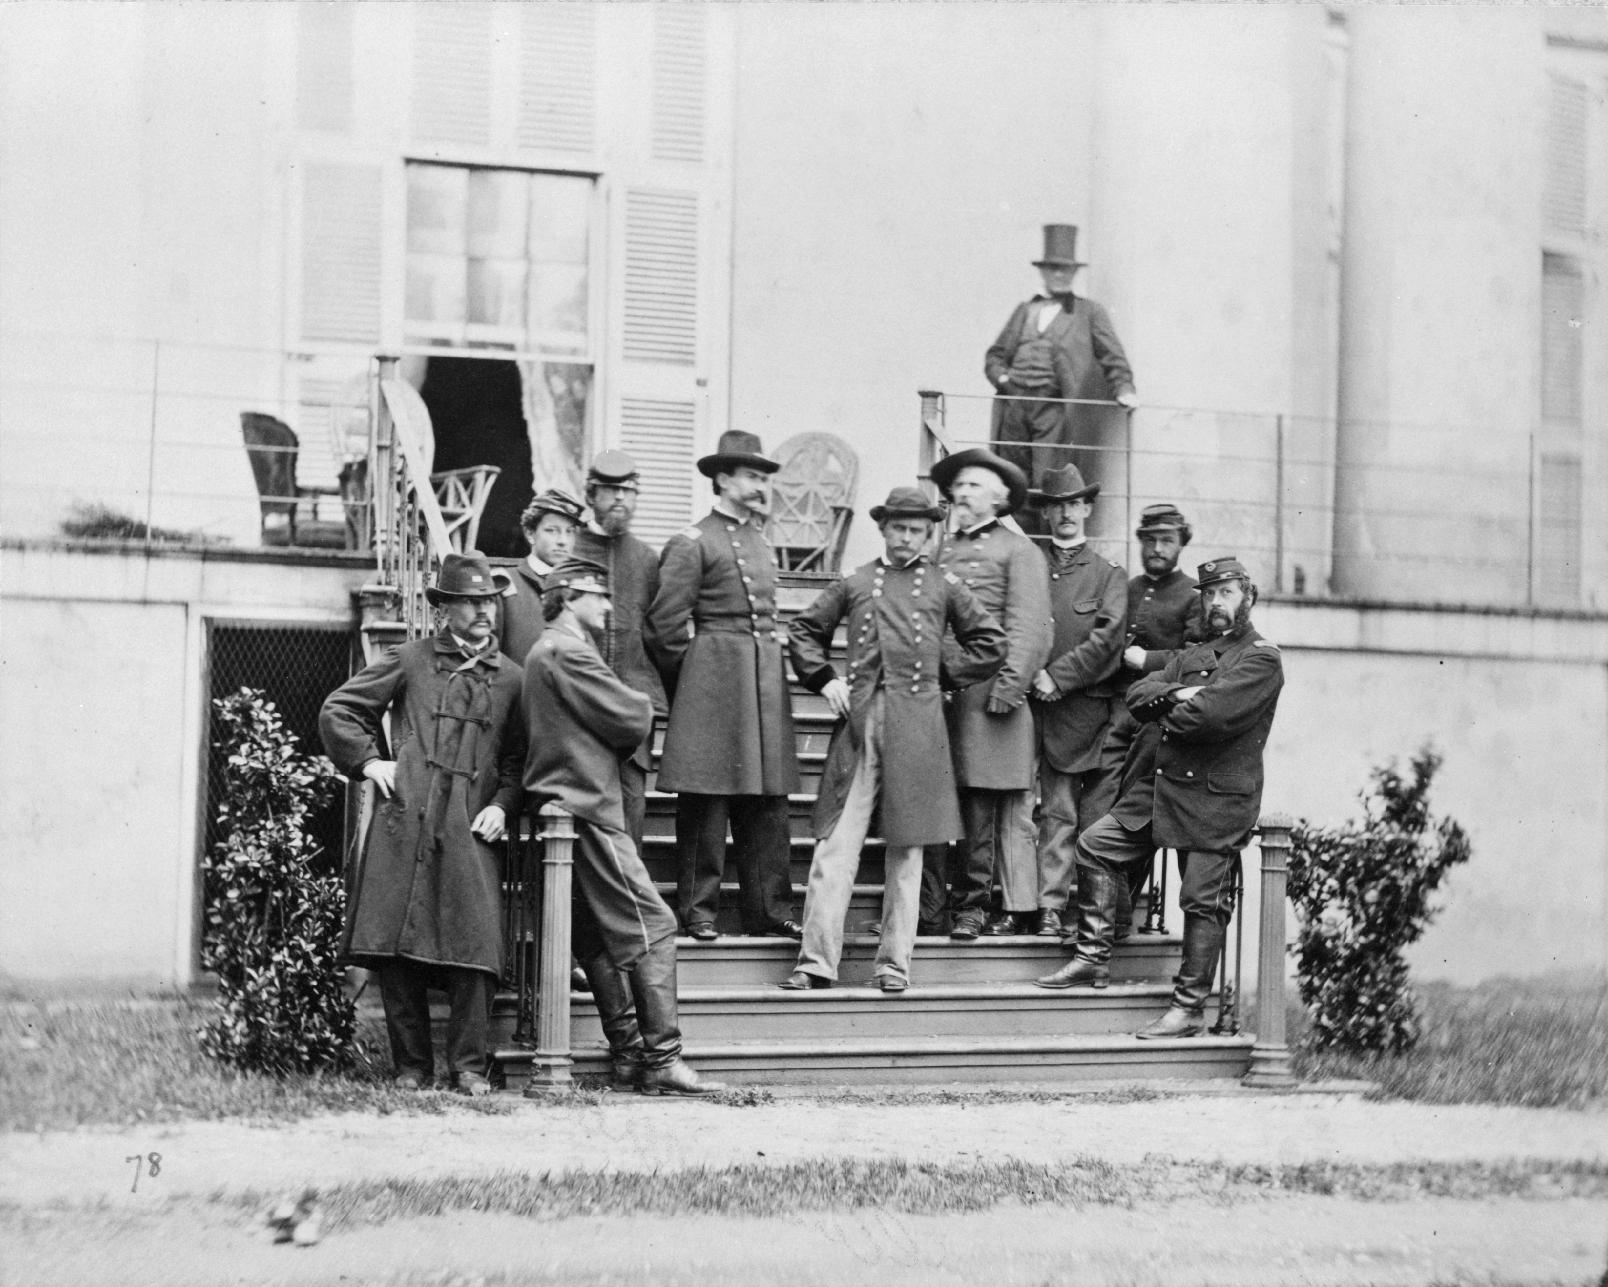 File:Ord & Staff South Portico WHC-1865 - LC- B78.